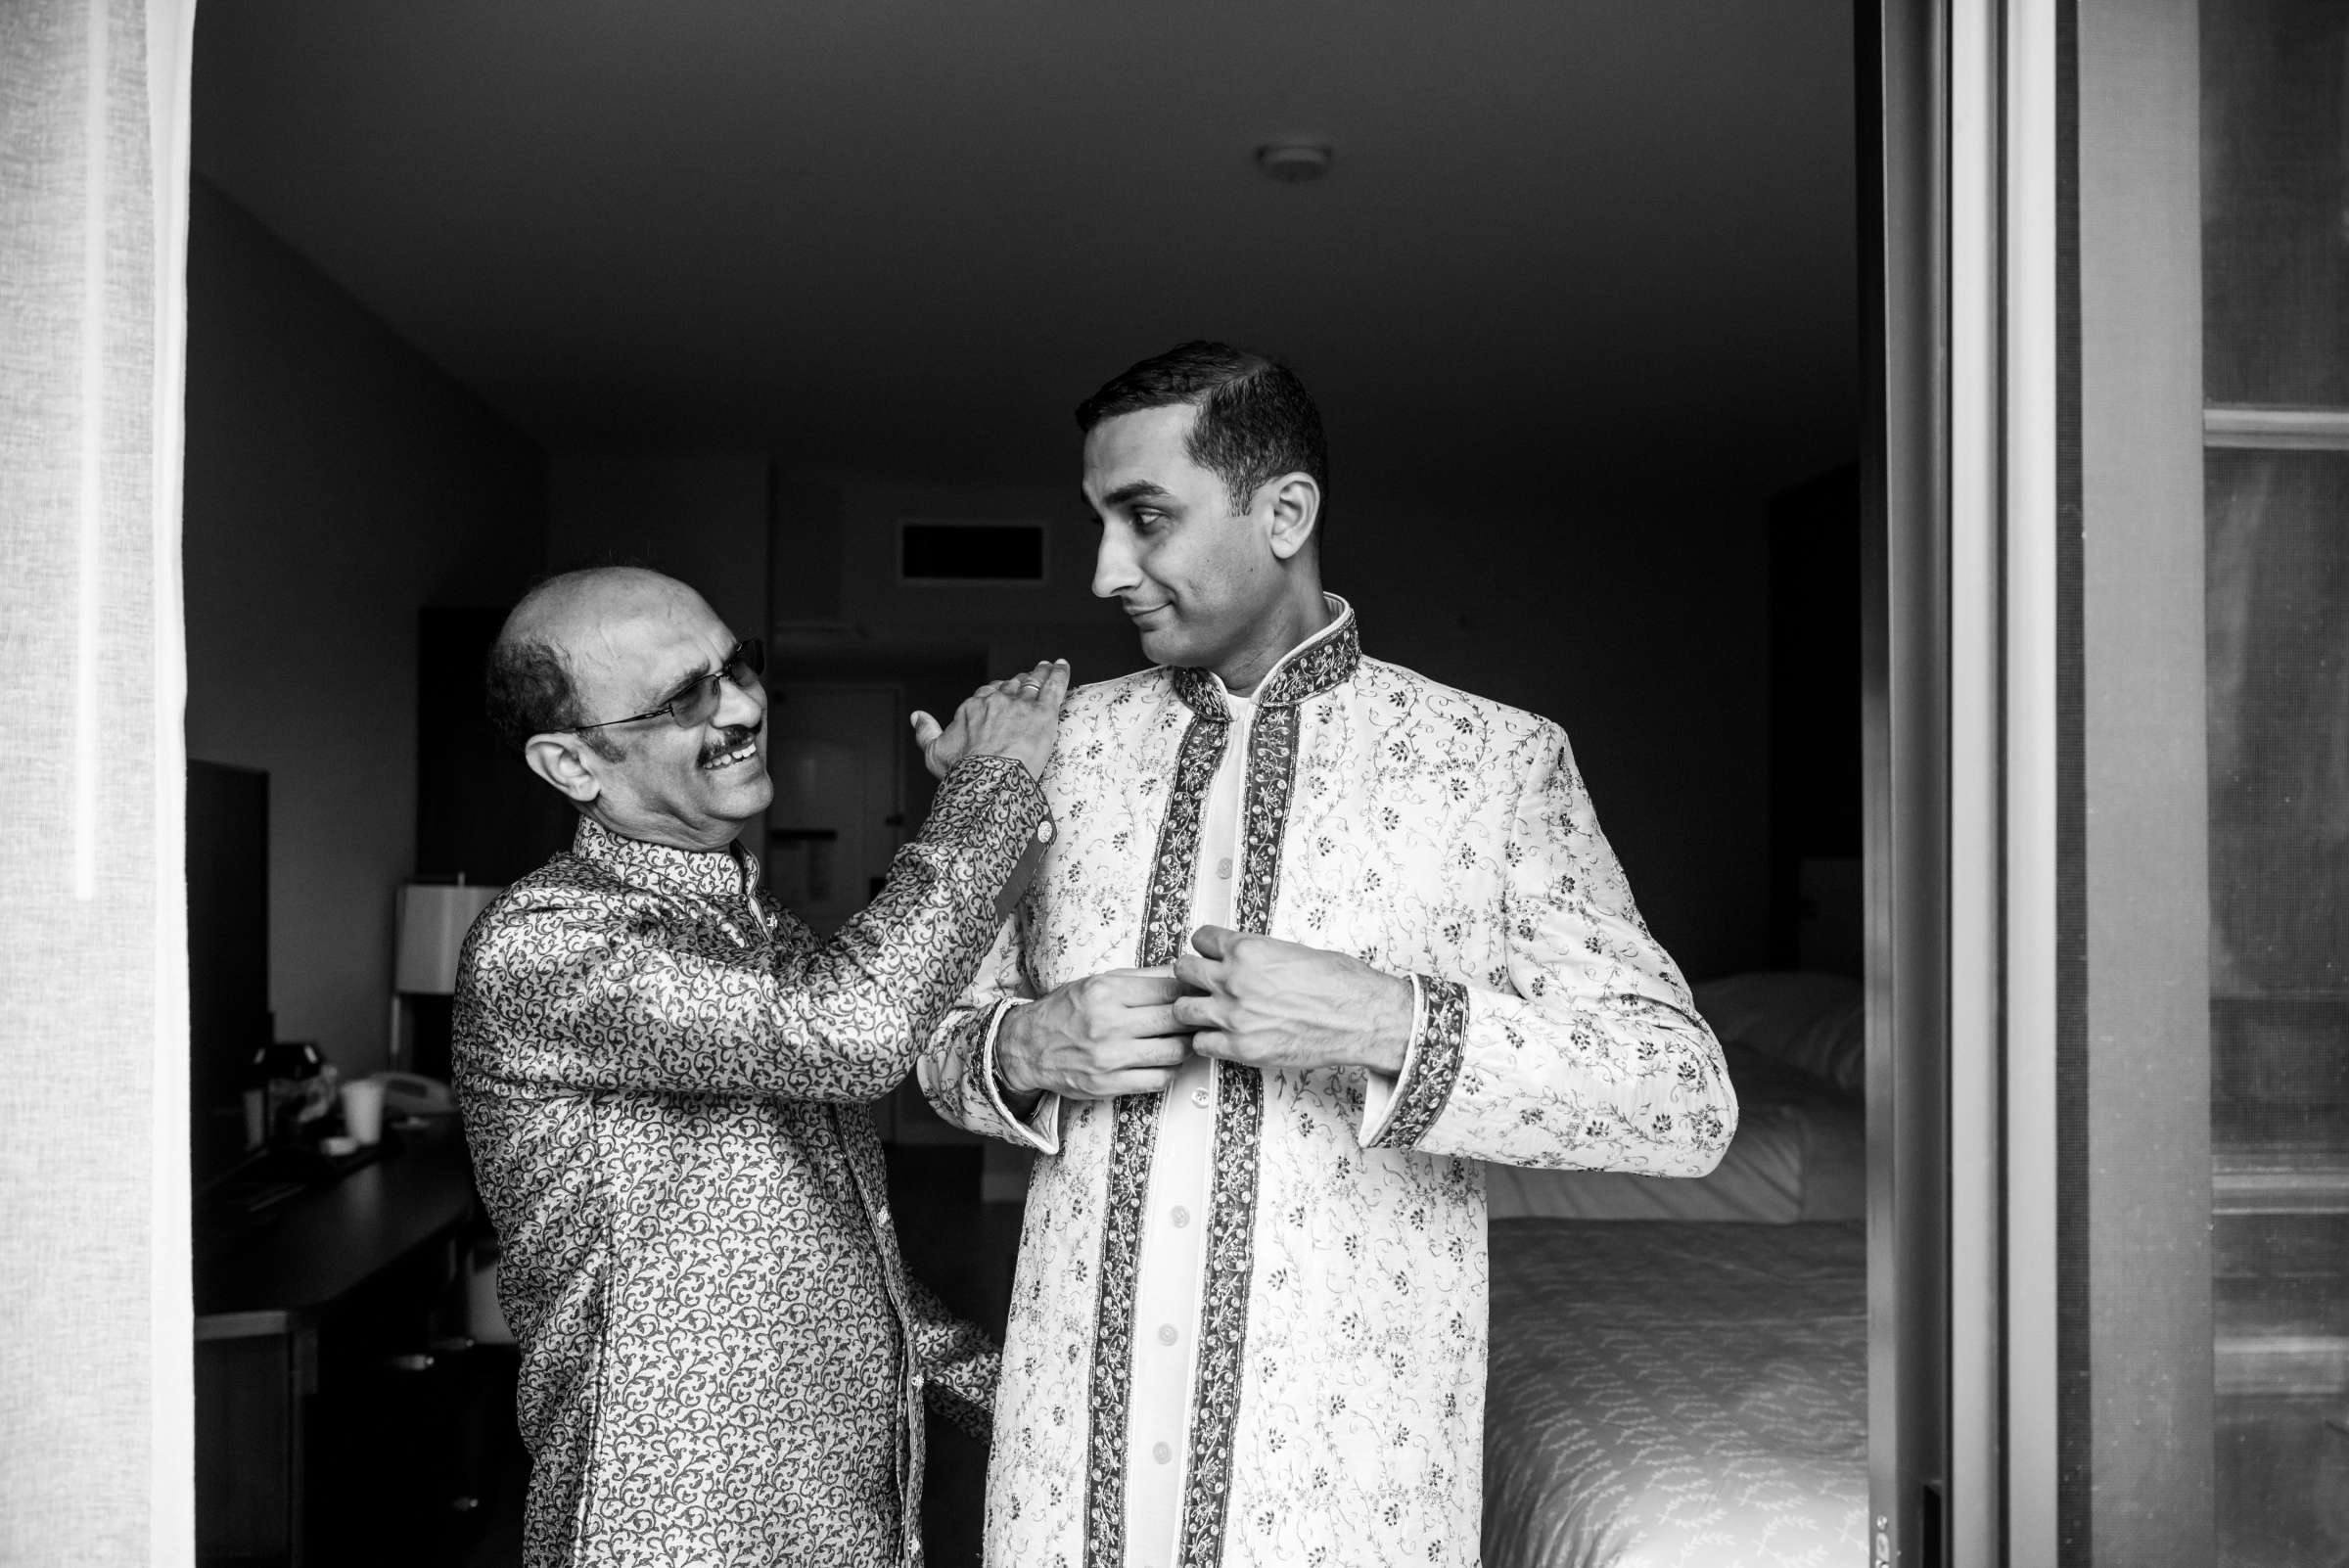 The Westin Carlsbad Resort and Spa Wedding coordinated by Shilpa Patel Events, Ami and Amit Wedding Photo #133 by True Photography